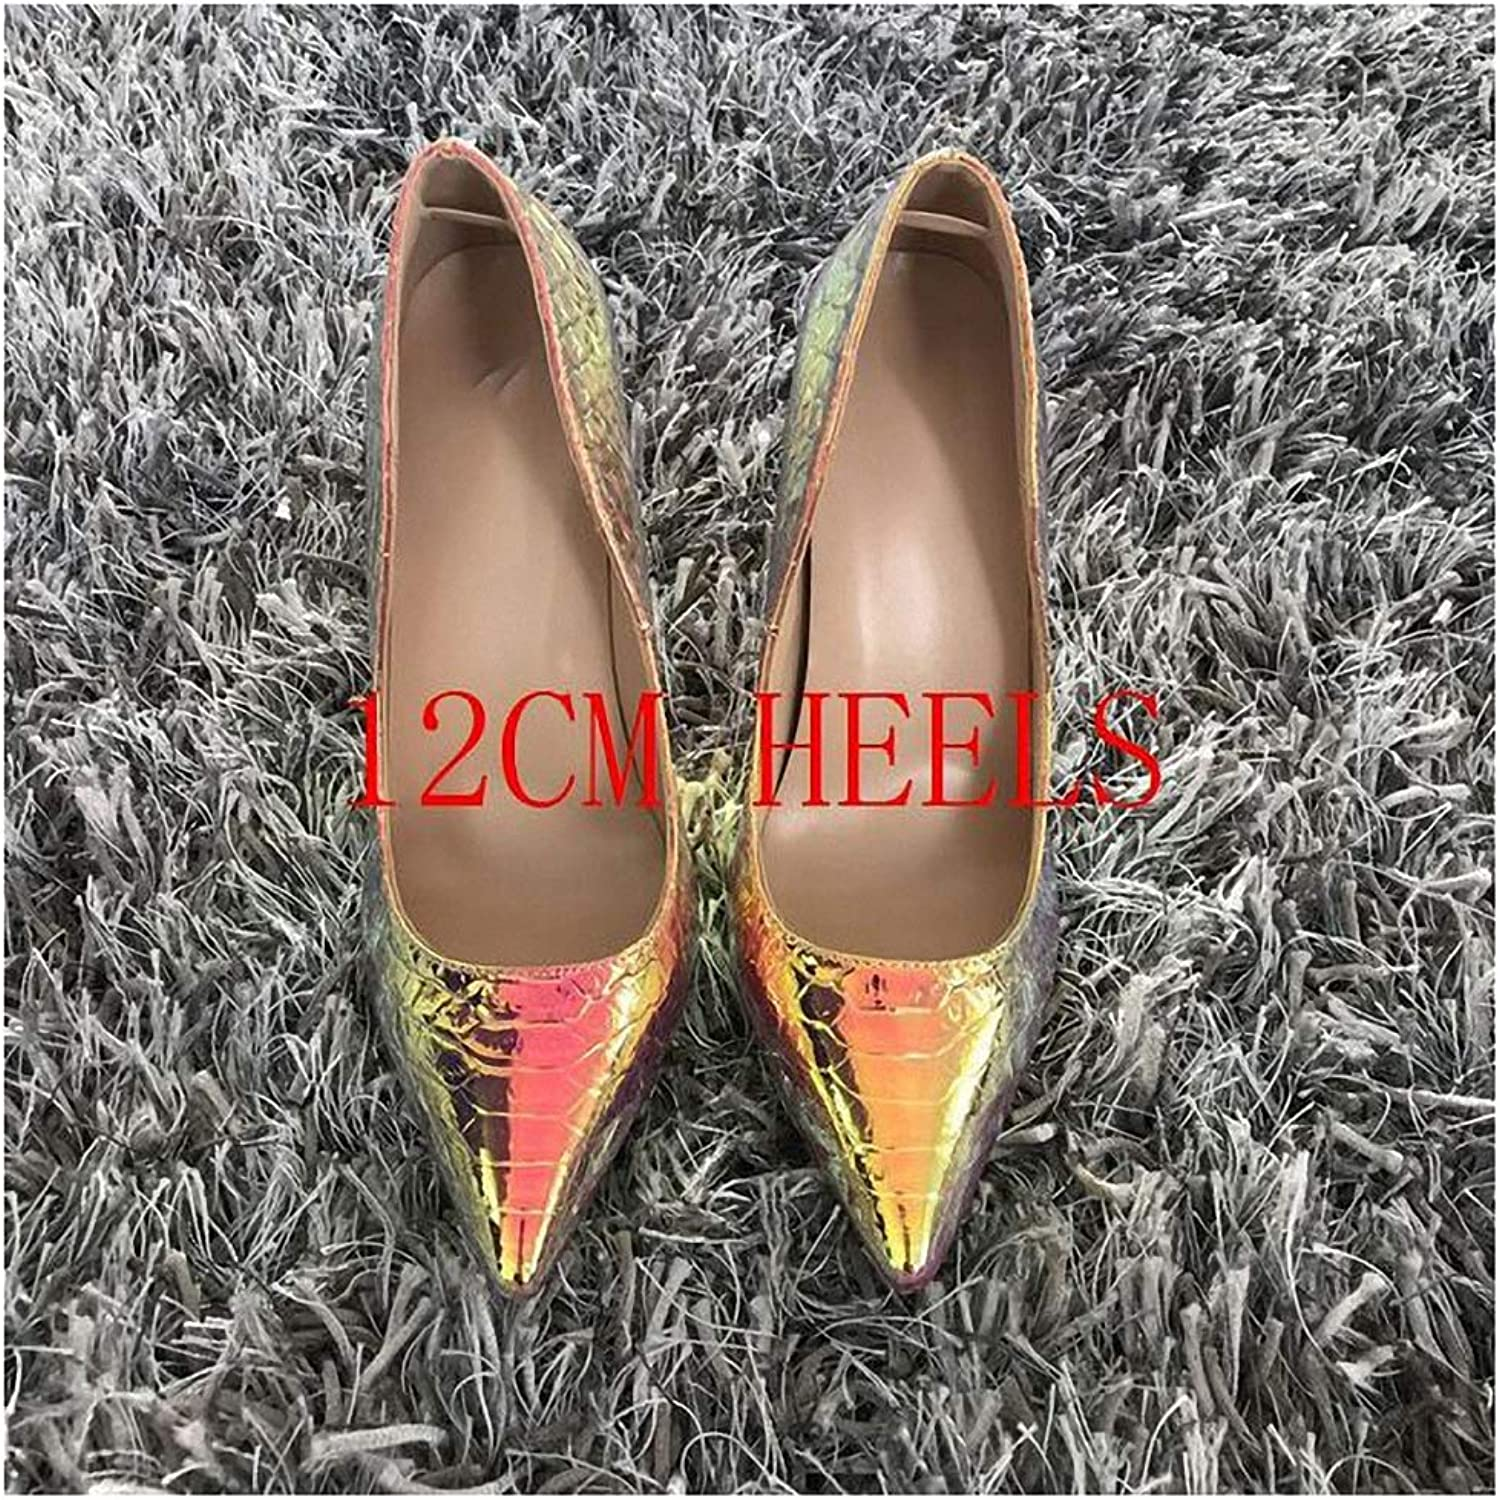 Womens High-Heeled Pumps shoes Women shoes Stiletto High Heels Women Pumps Snake Printing Leather Pointed Toe Ladies Party Wedding Woman shoes